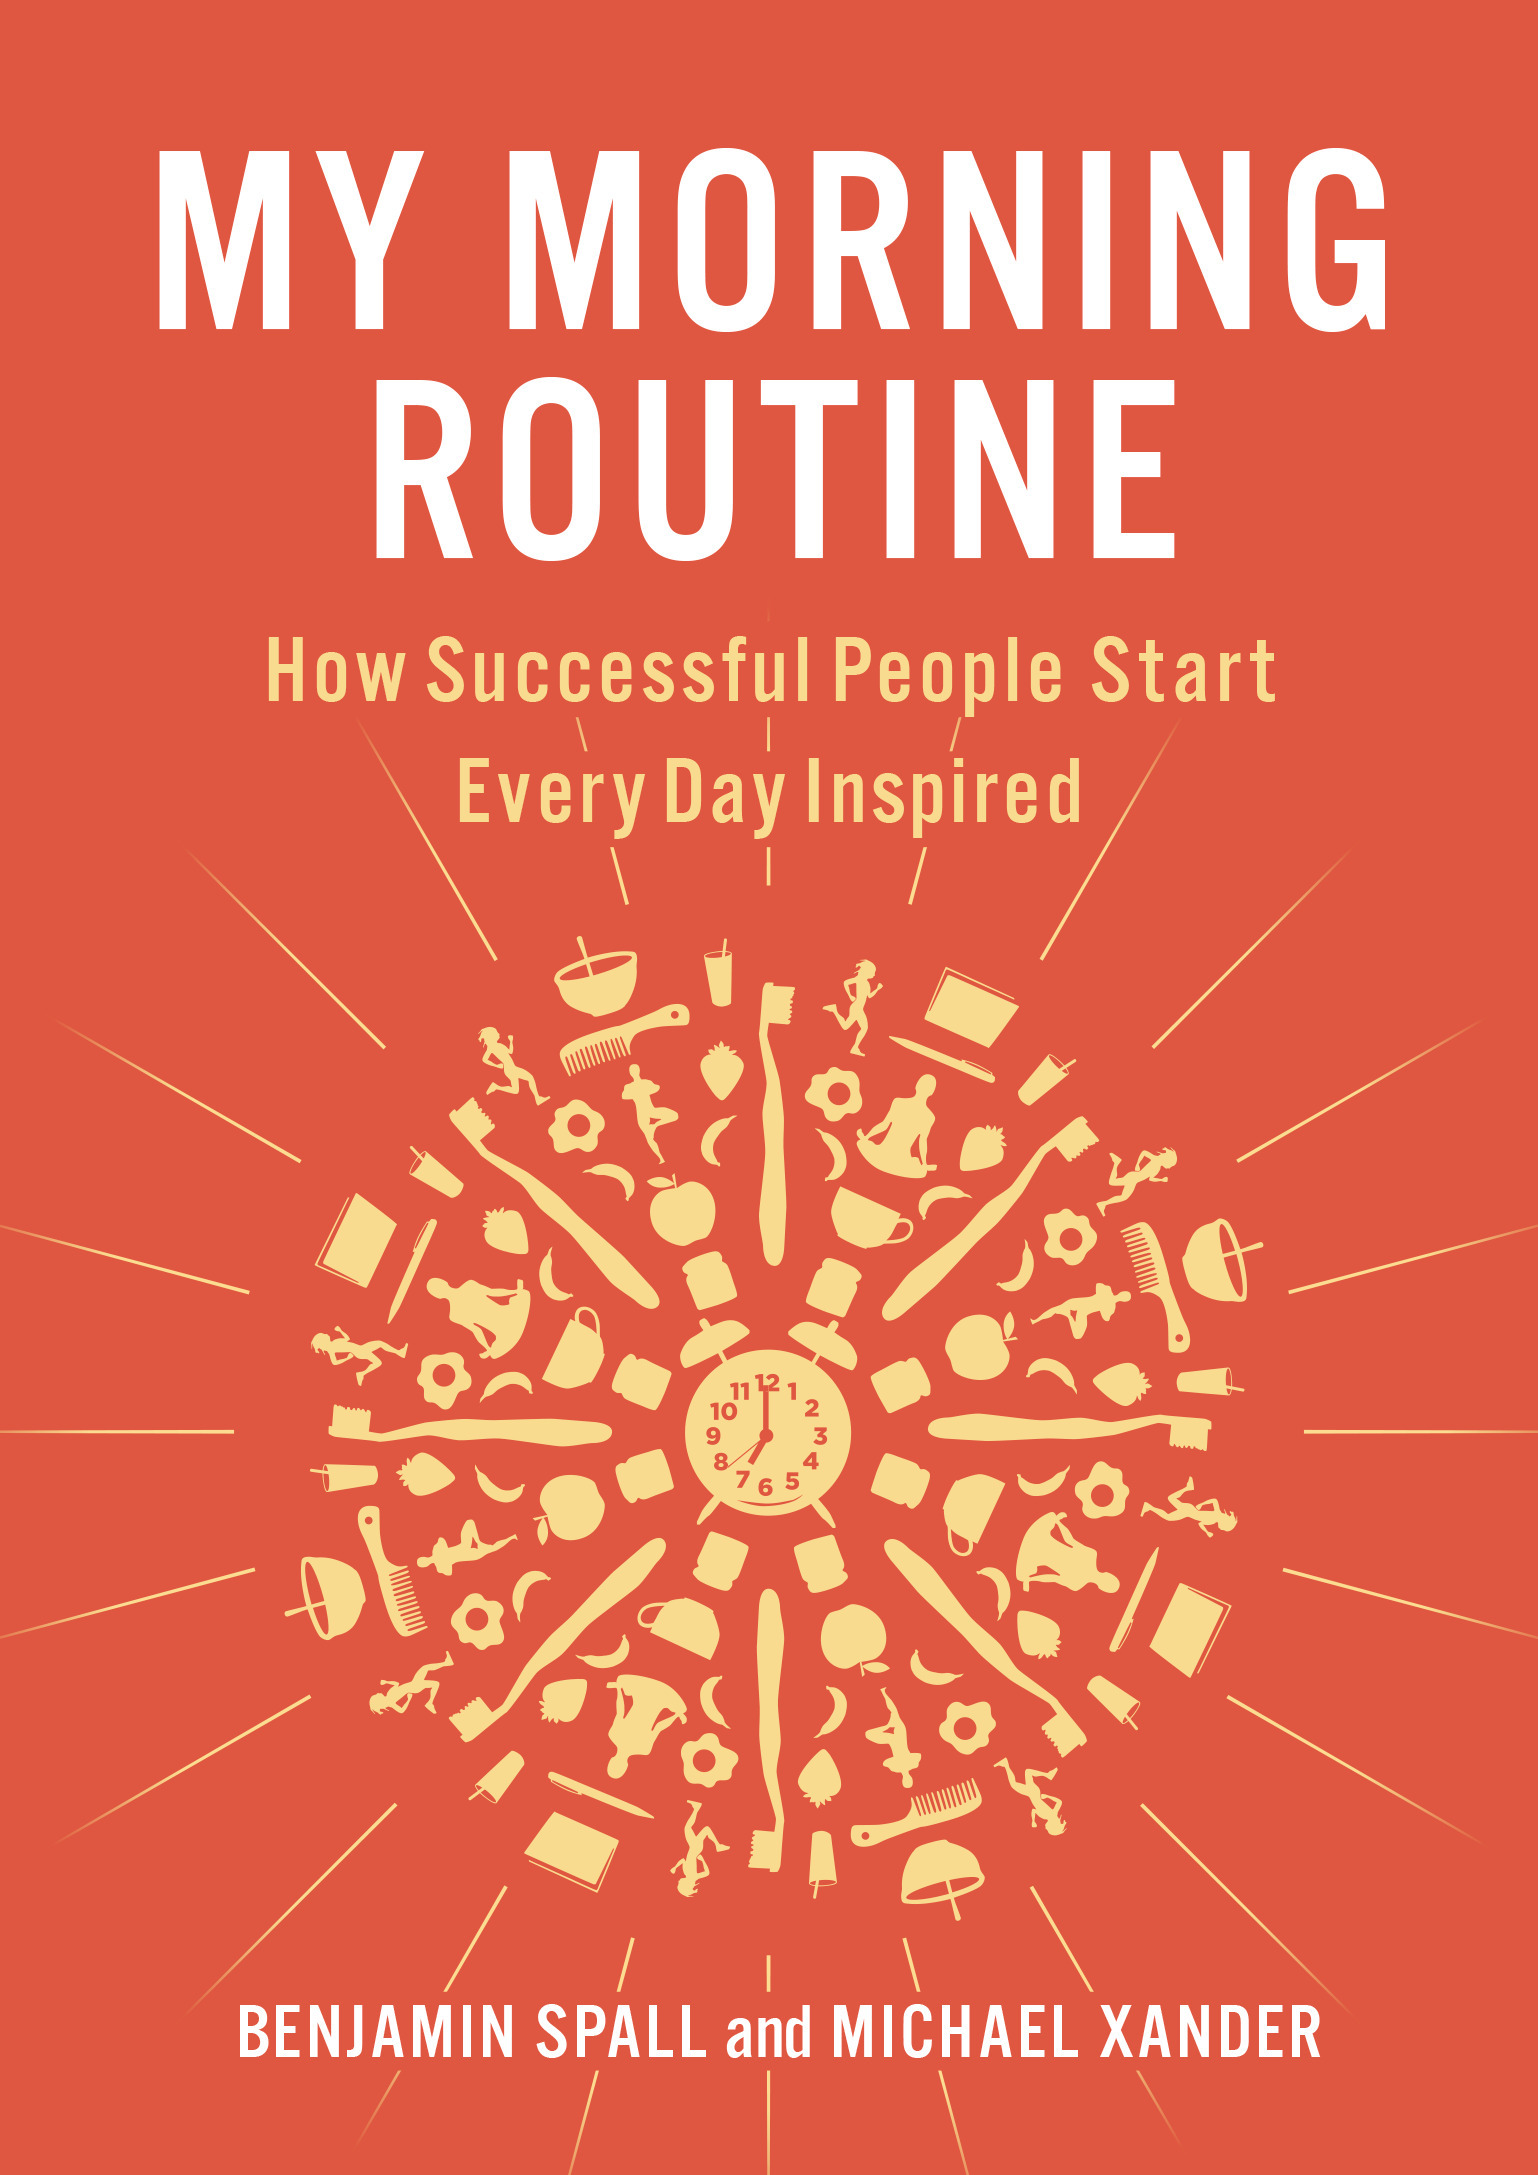 My-Morning-Routine-How-Successful-People-Start-Every-Day-Inspired